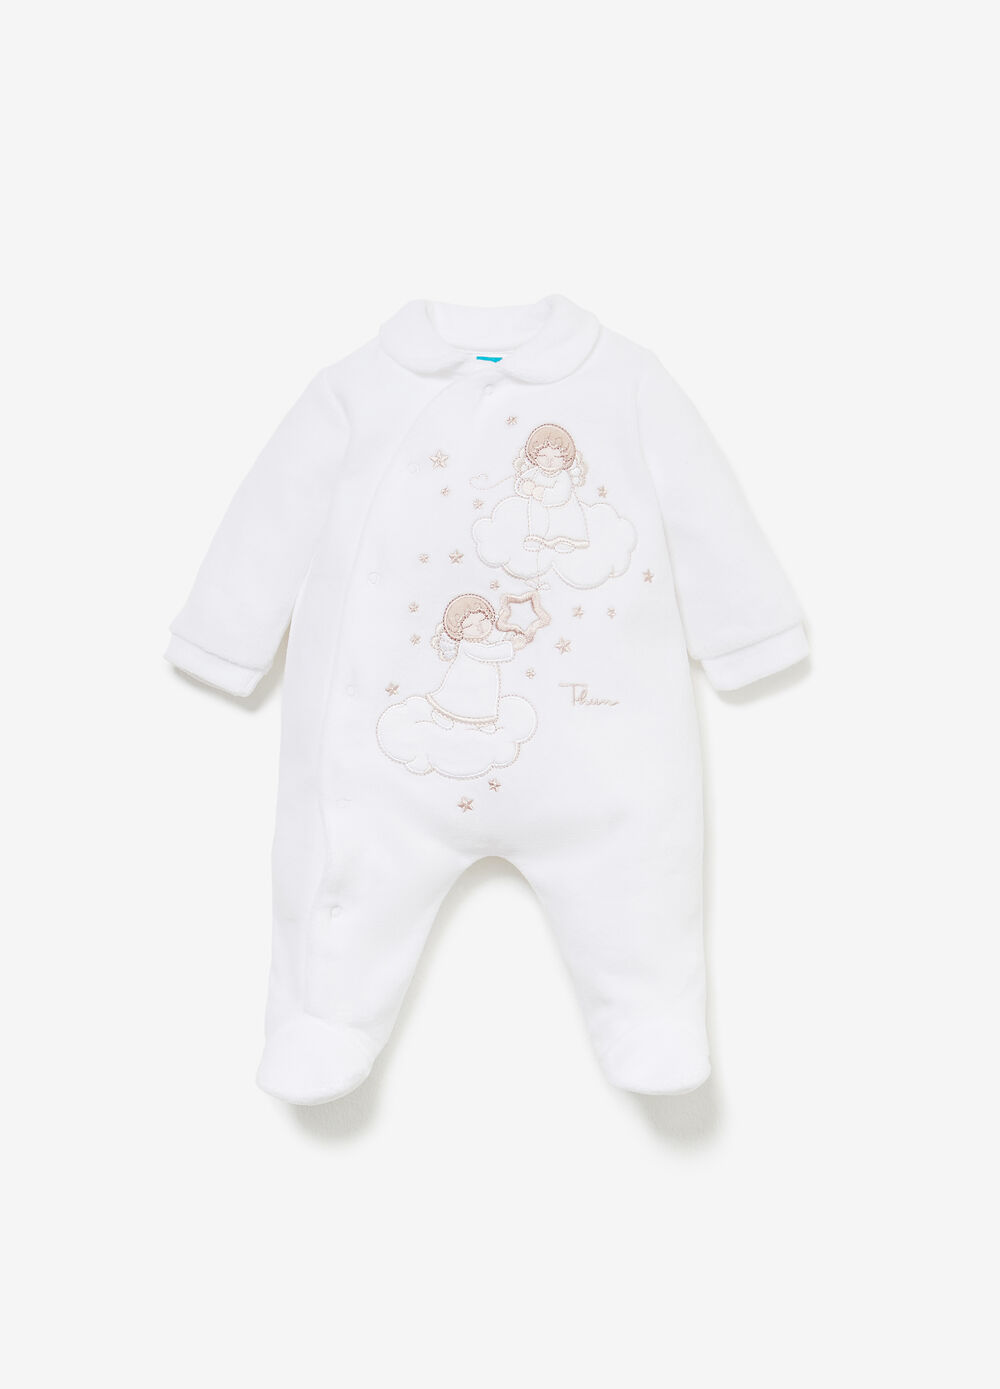 THUN Angels unisex romper suit